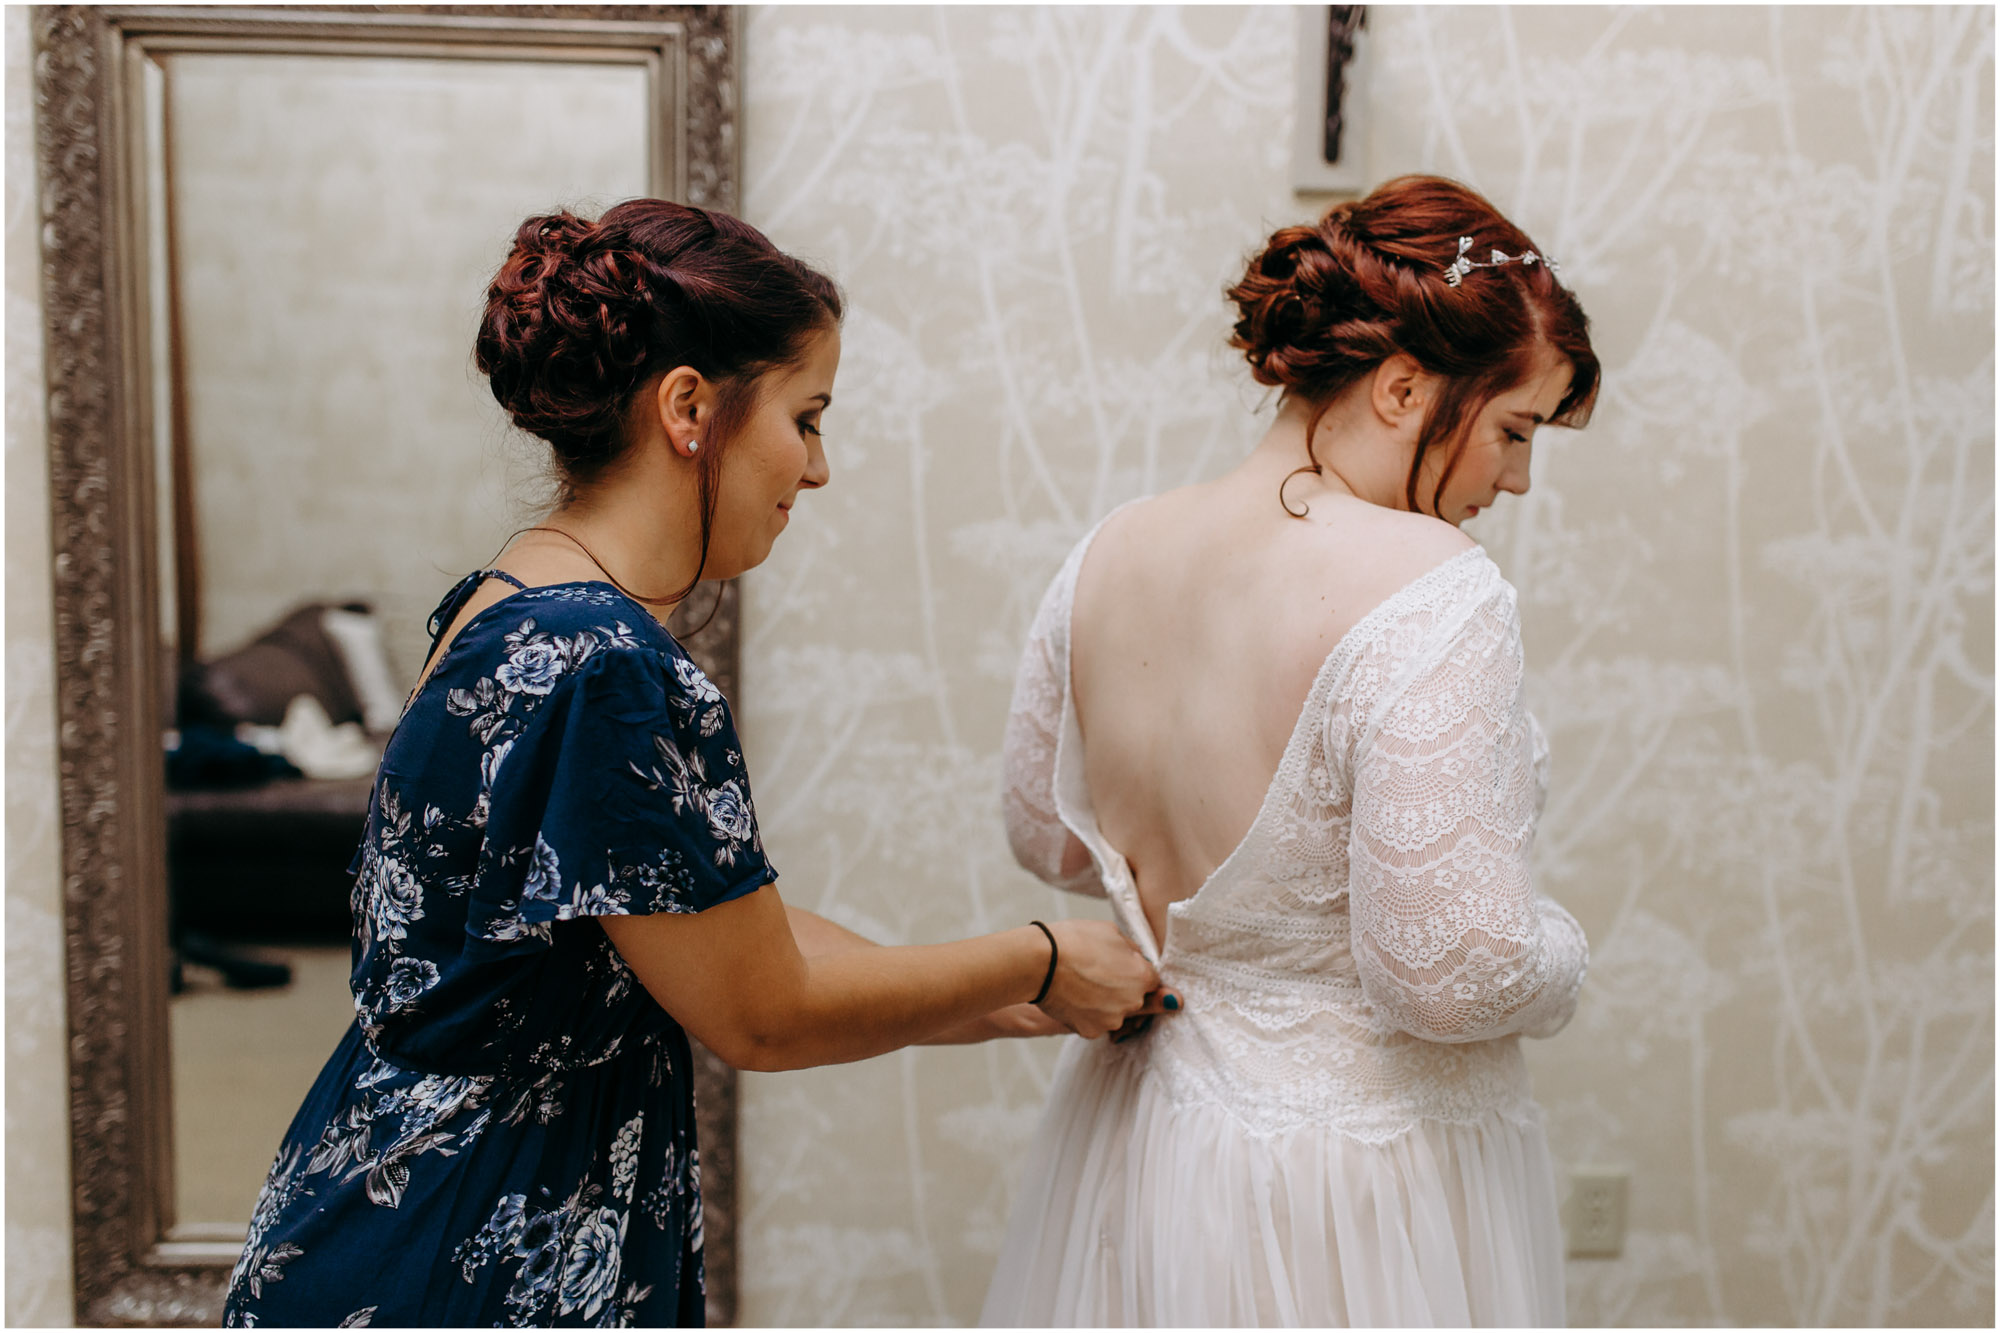 Maid of honor zipping bride's wedding dress - by Ashleigh Laureen Photography at LaBelle Winery in Amherst, New Hampshire.